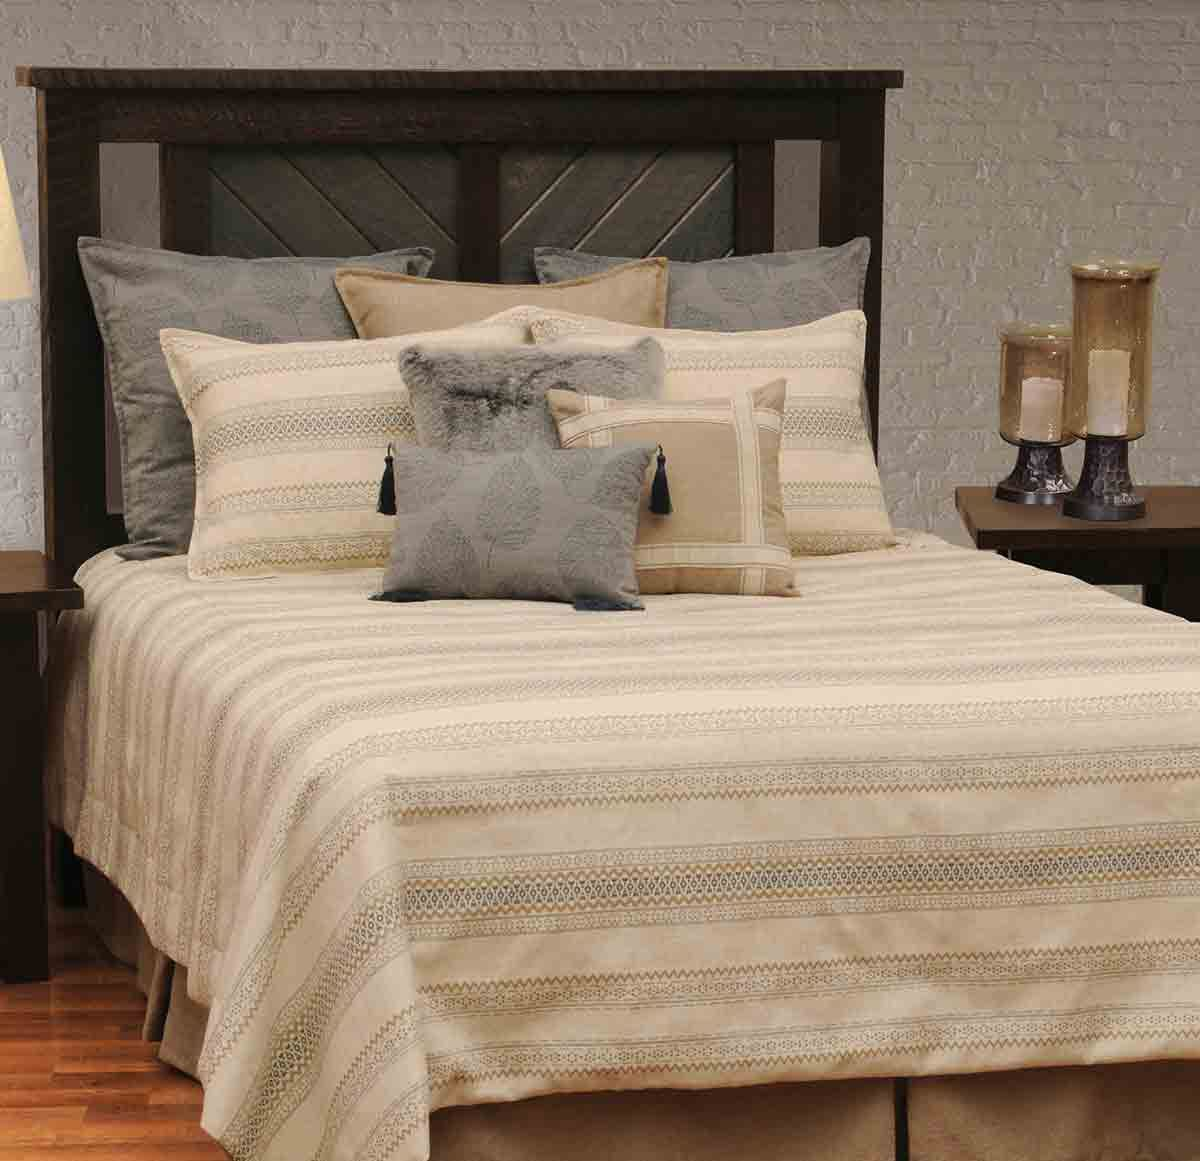 Ava Deluxe Bed Set - Super King